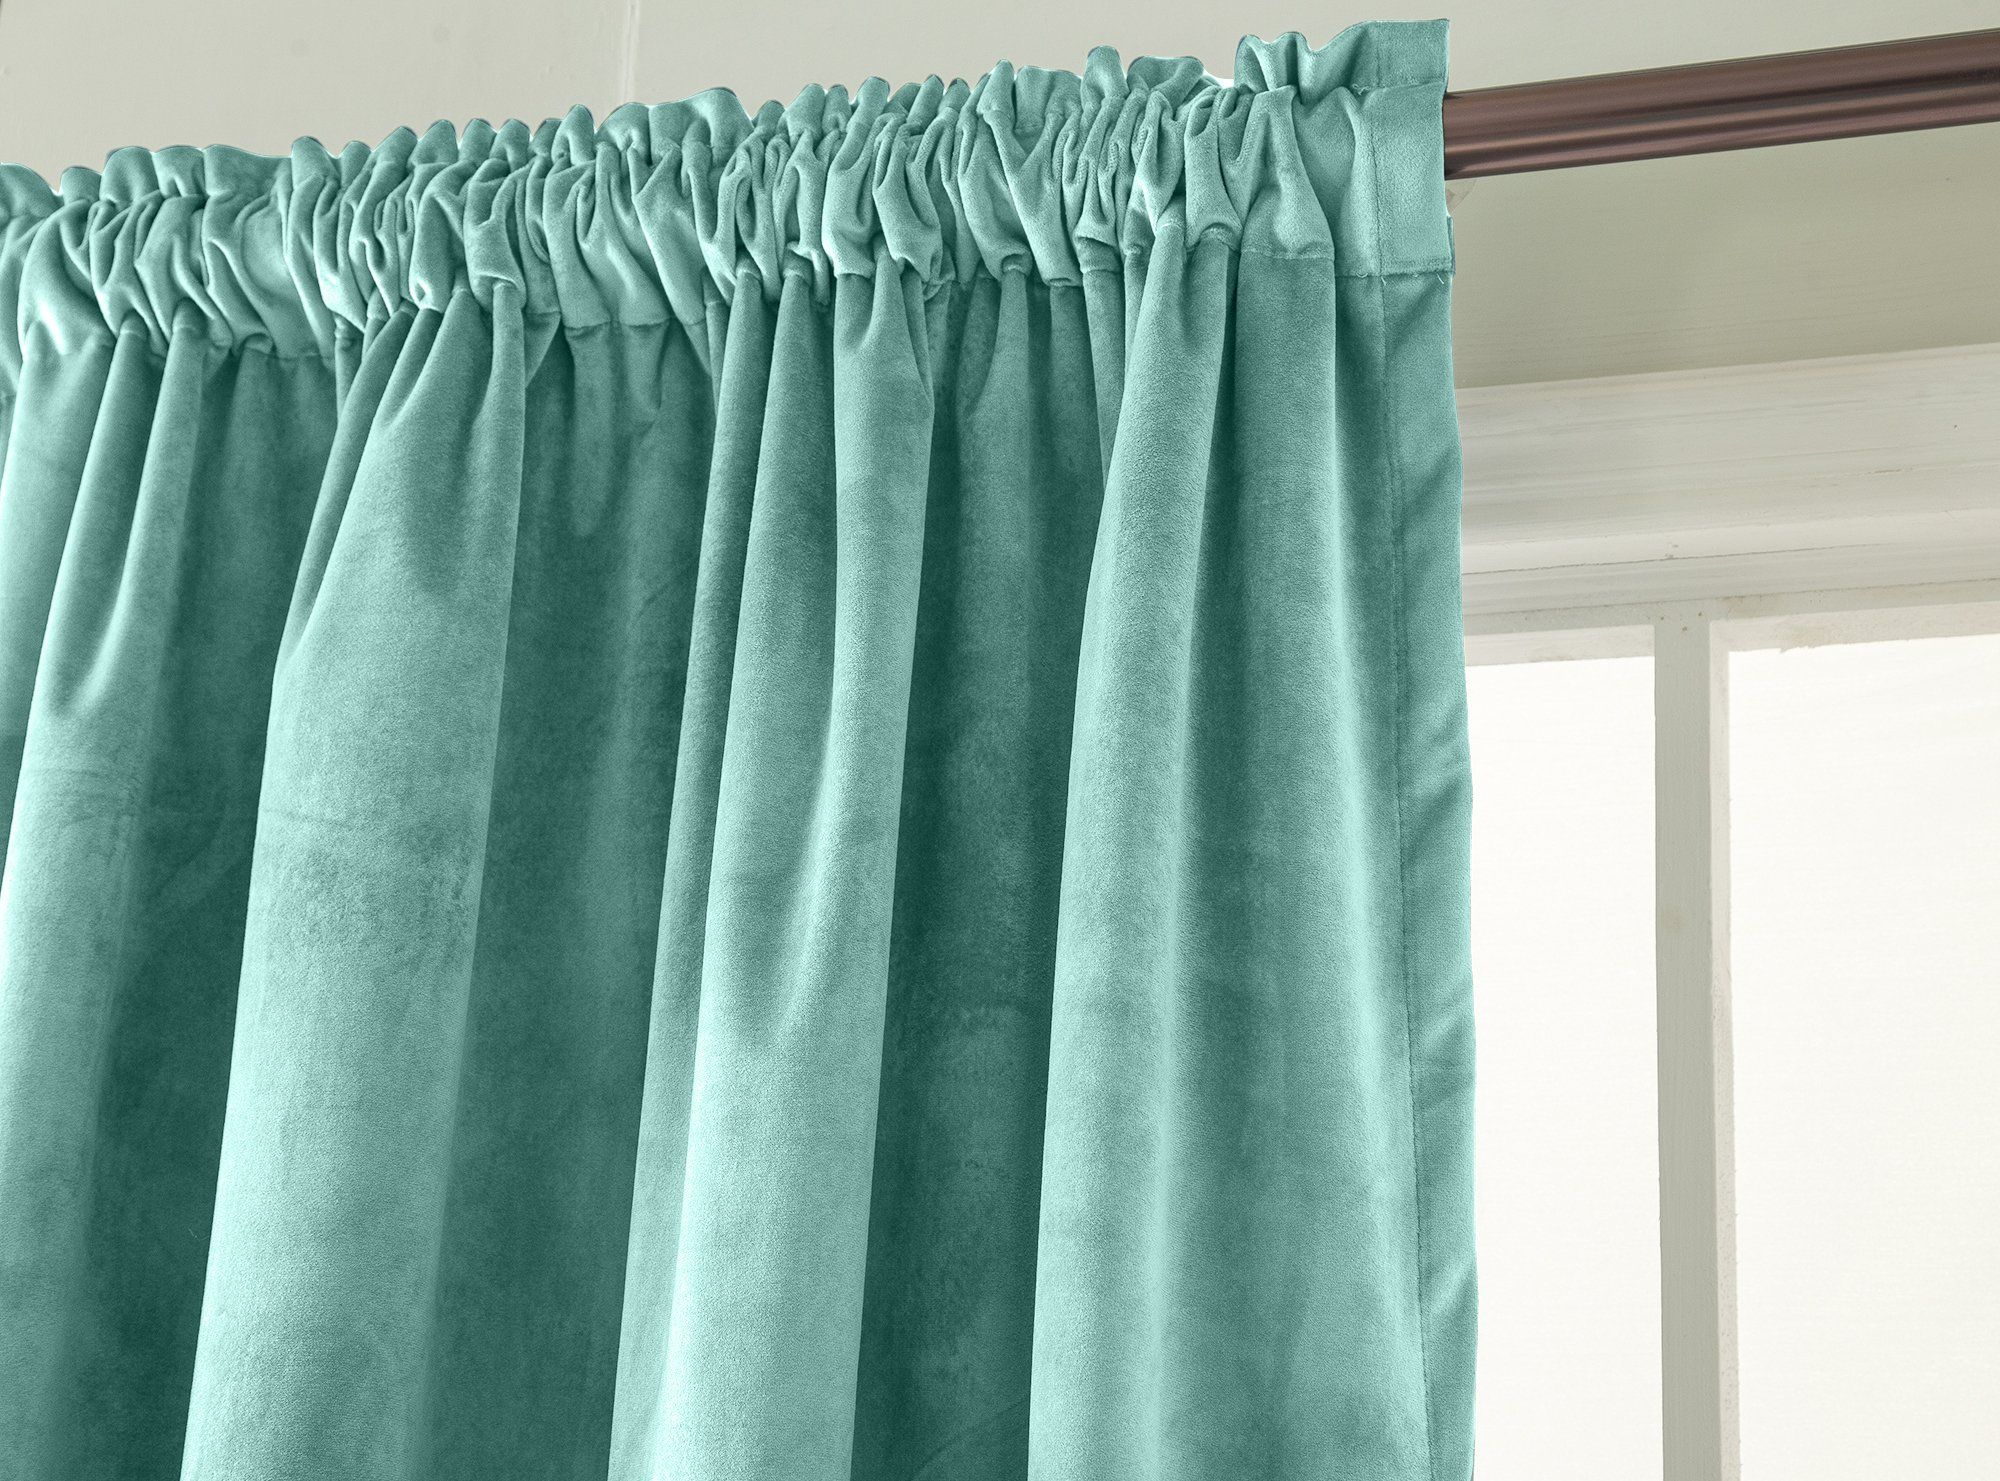 Comforhome Solid Soft Velvet Window Curtain Rod Pocket Drapes Aqua